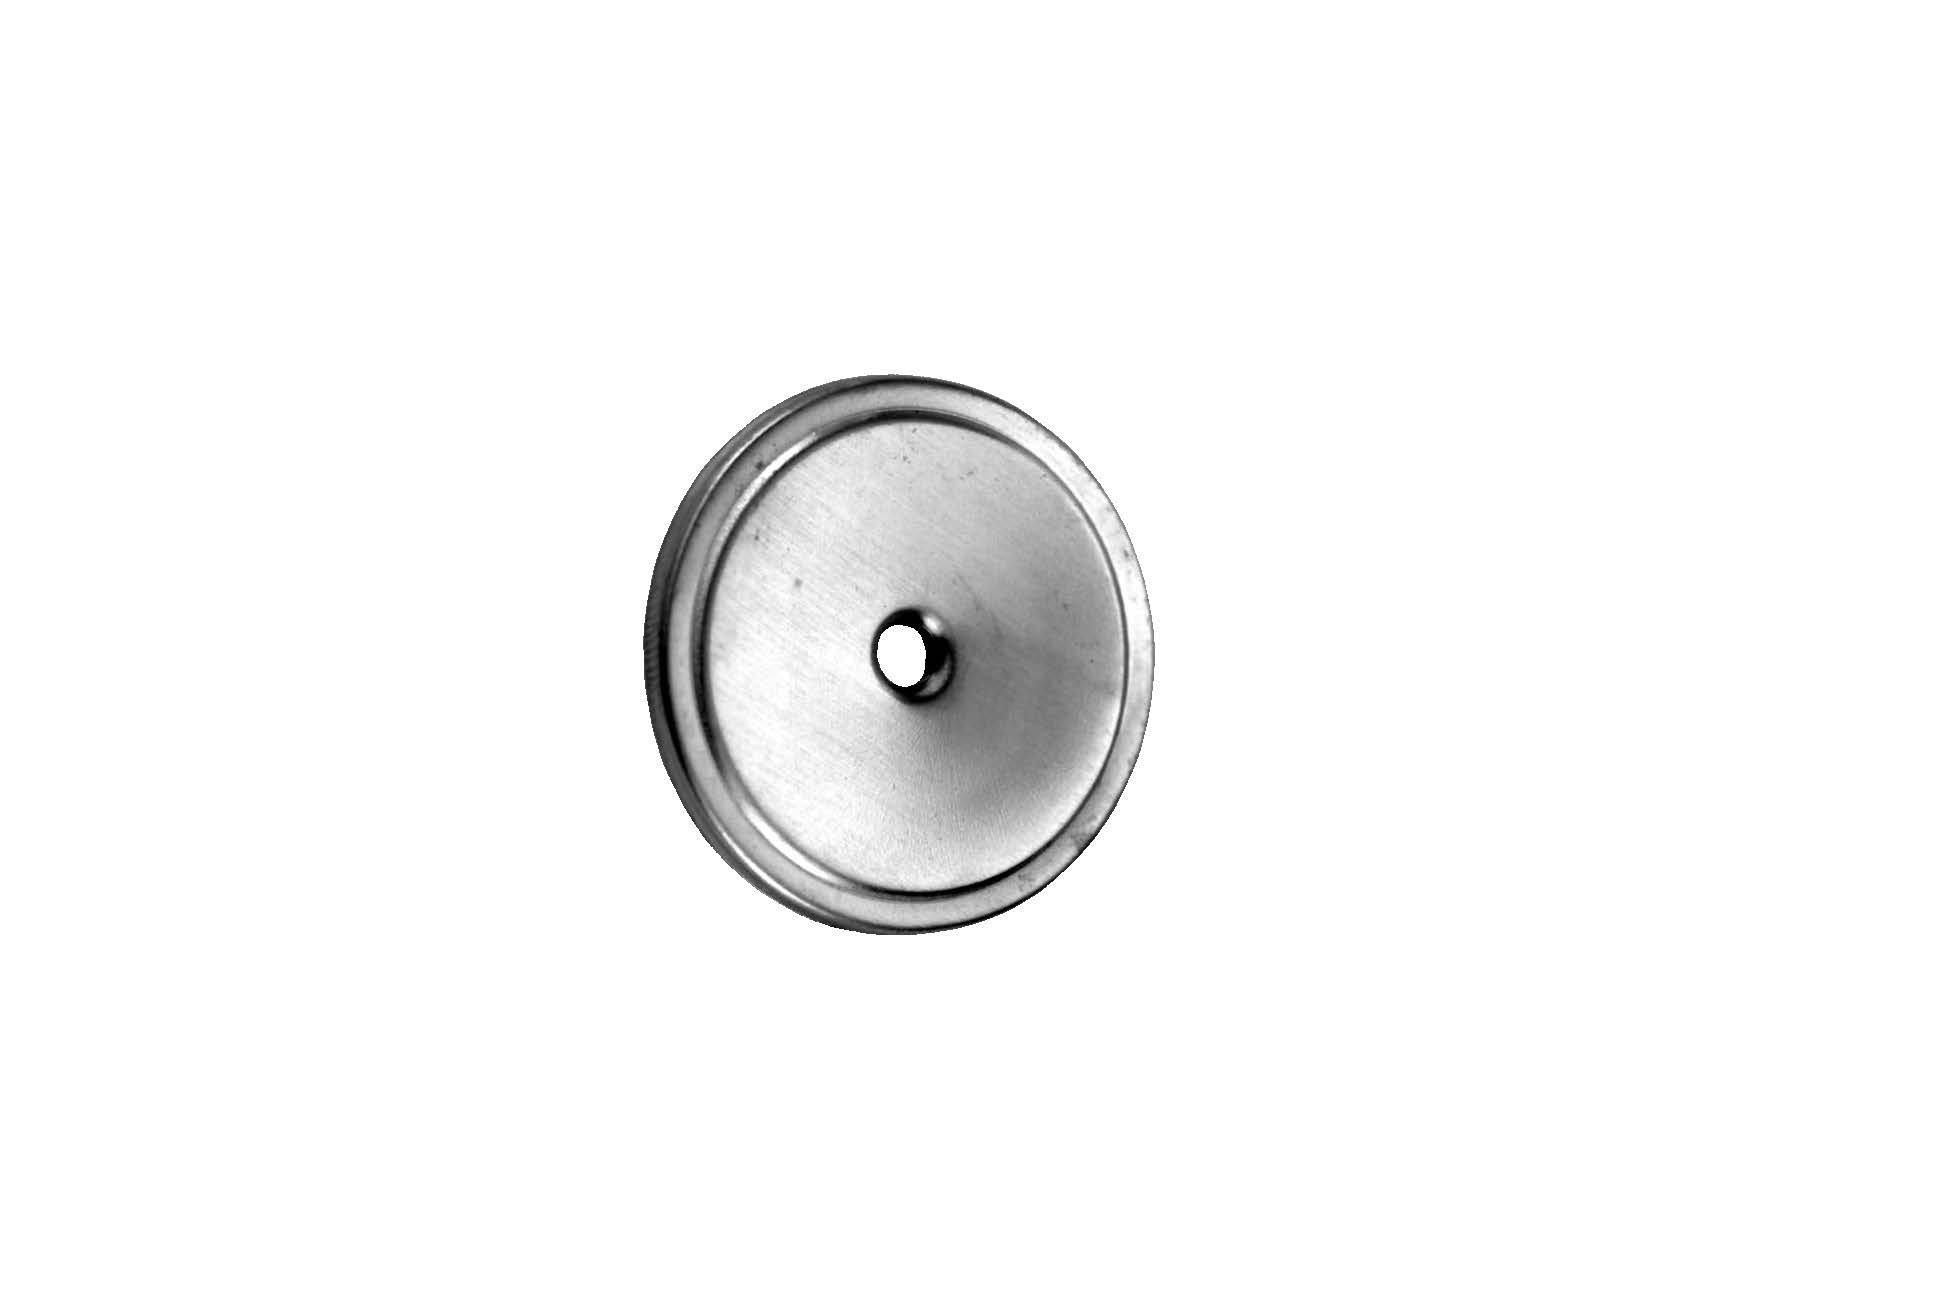 Don-Jo 57 Aluminum Cabinet Knob, Clear Coated Satin Nickel Plated, 1/8'' Projection, 1-1/2'' Knob Size (Pack of 10)